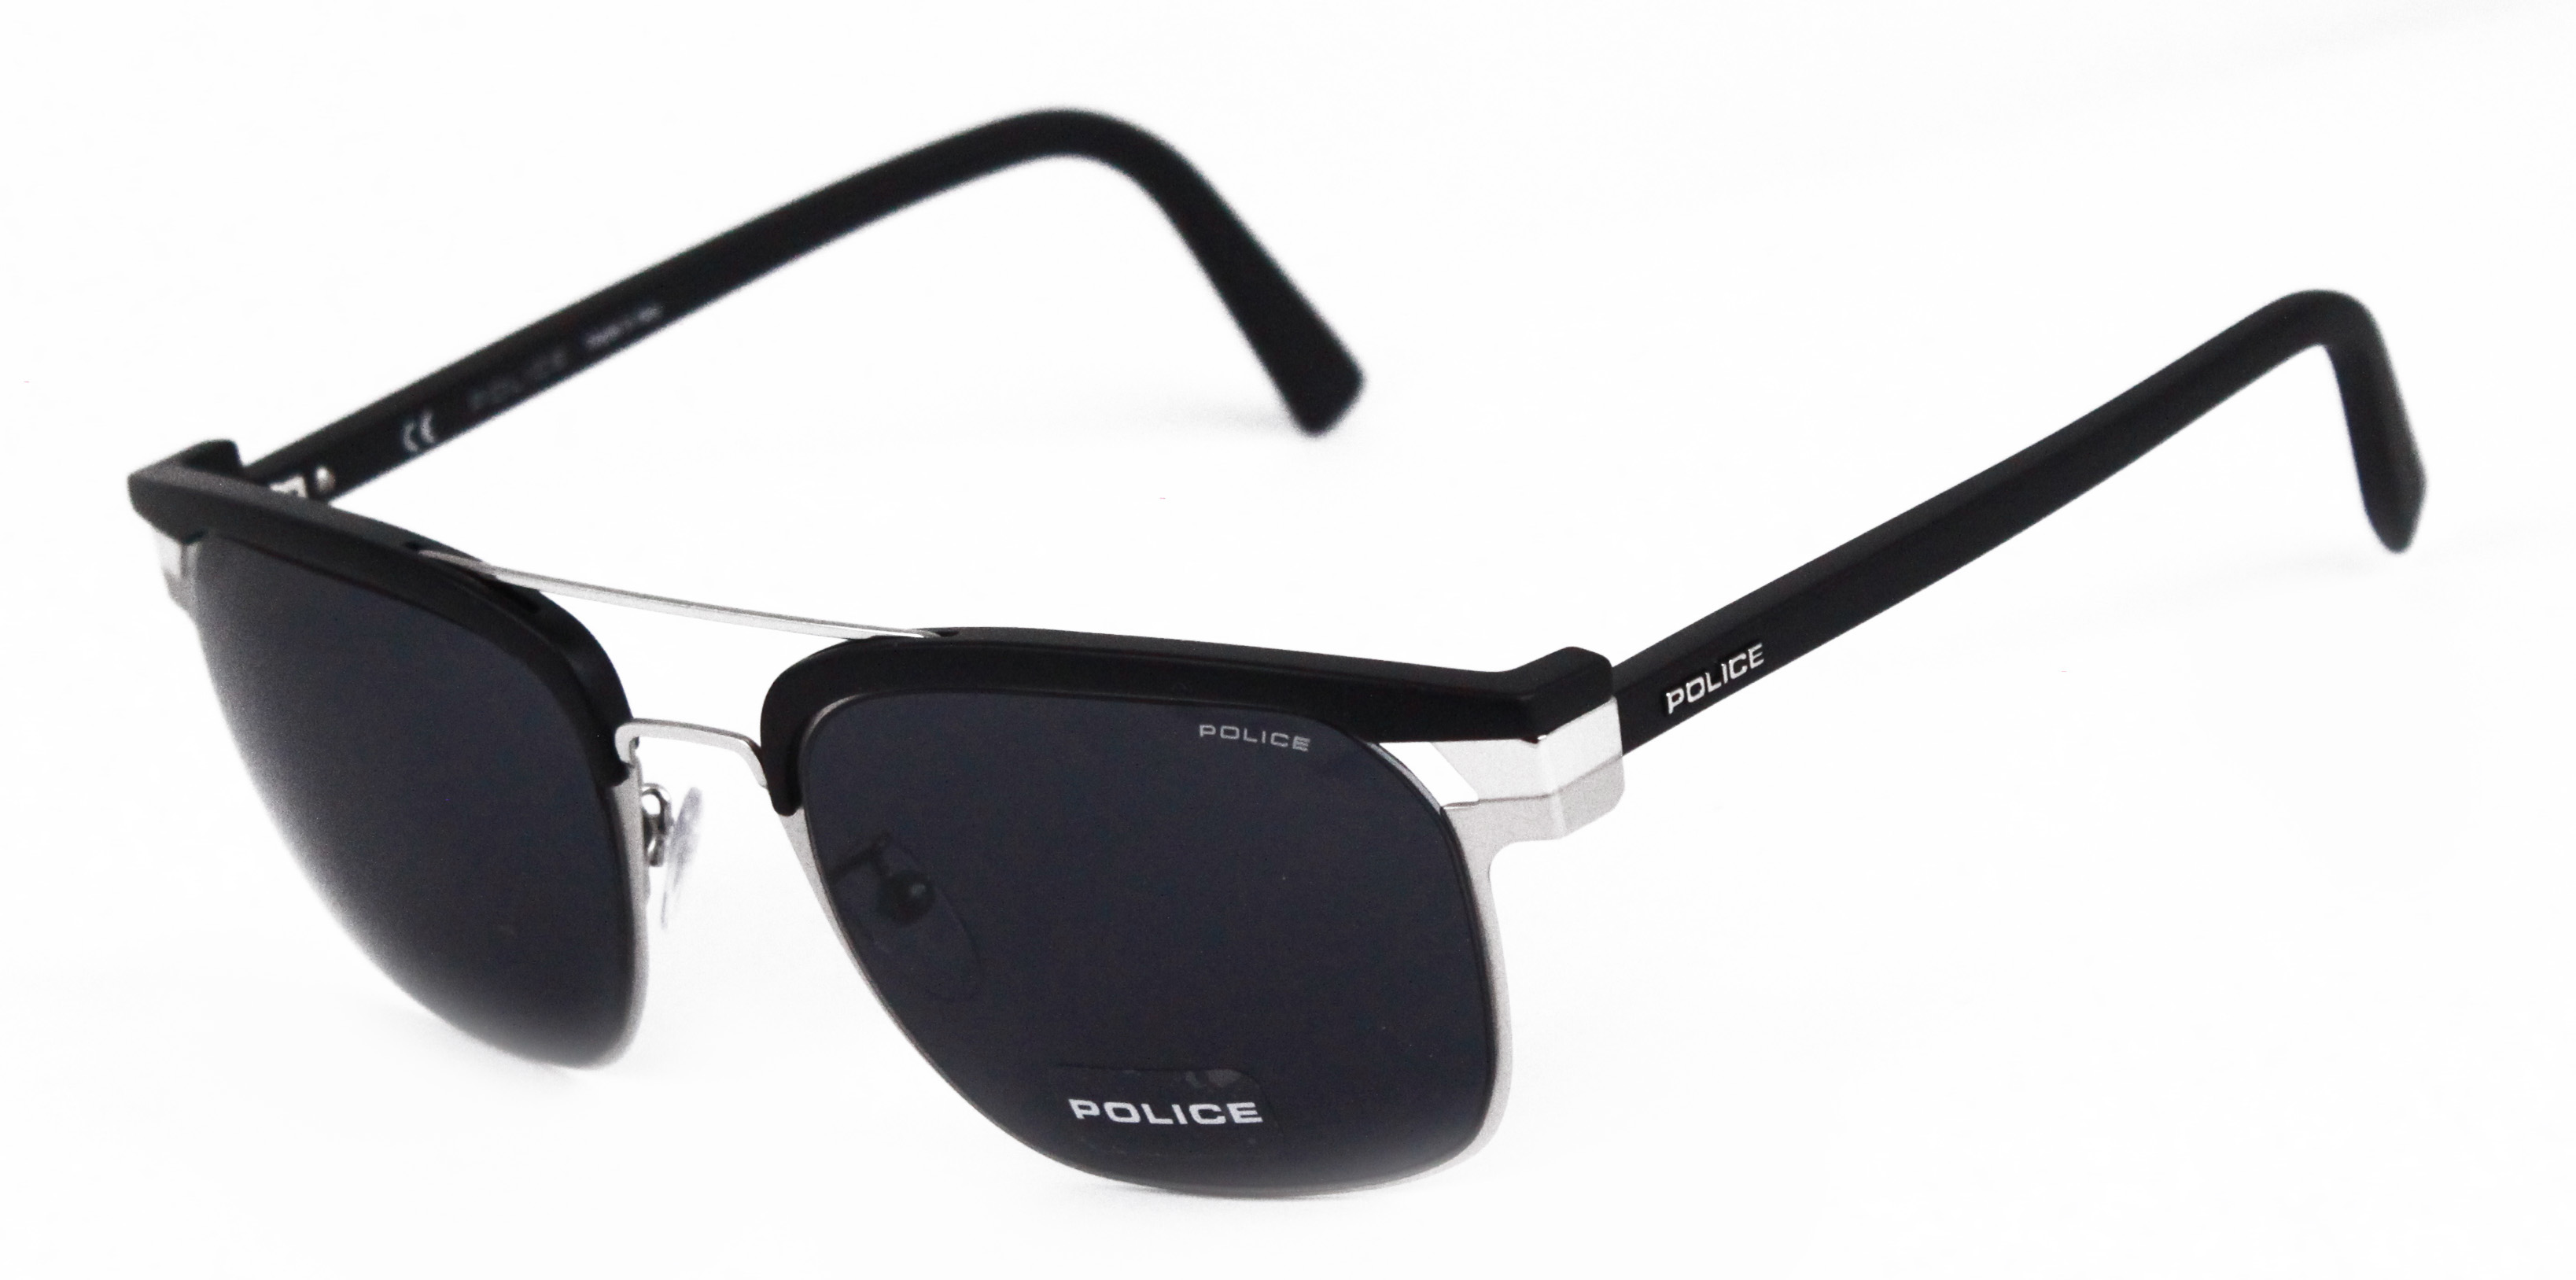 Details about Police SPL233 0581 Sunglasses 77b2813008